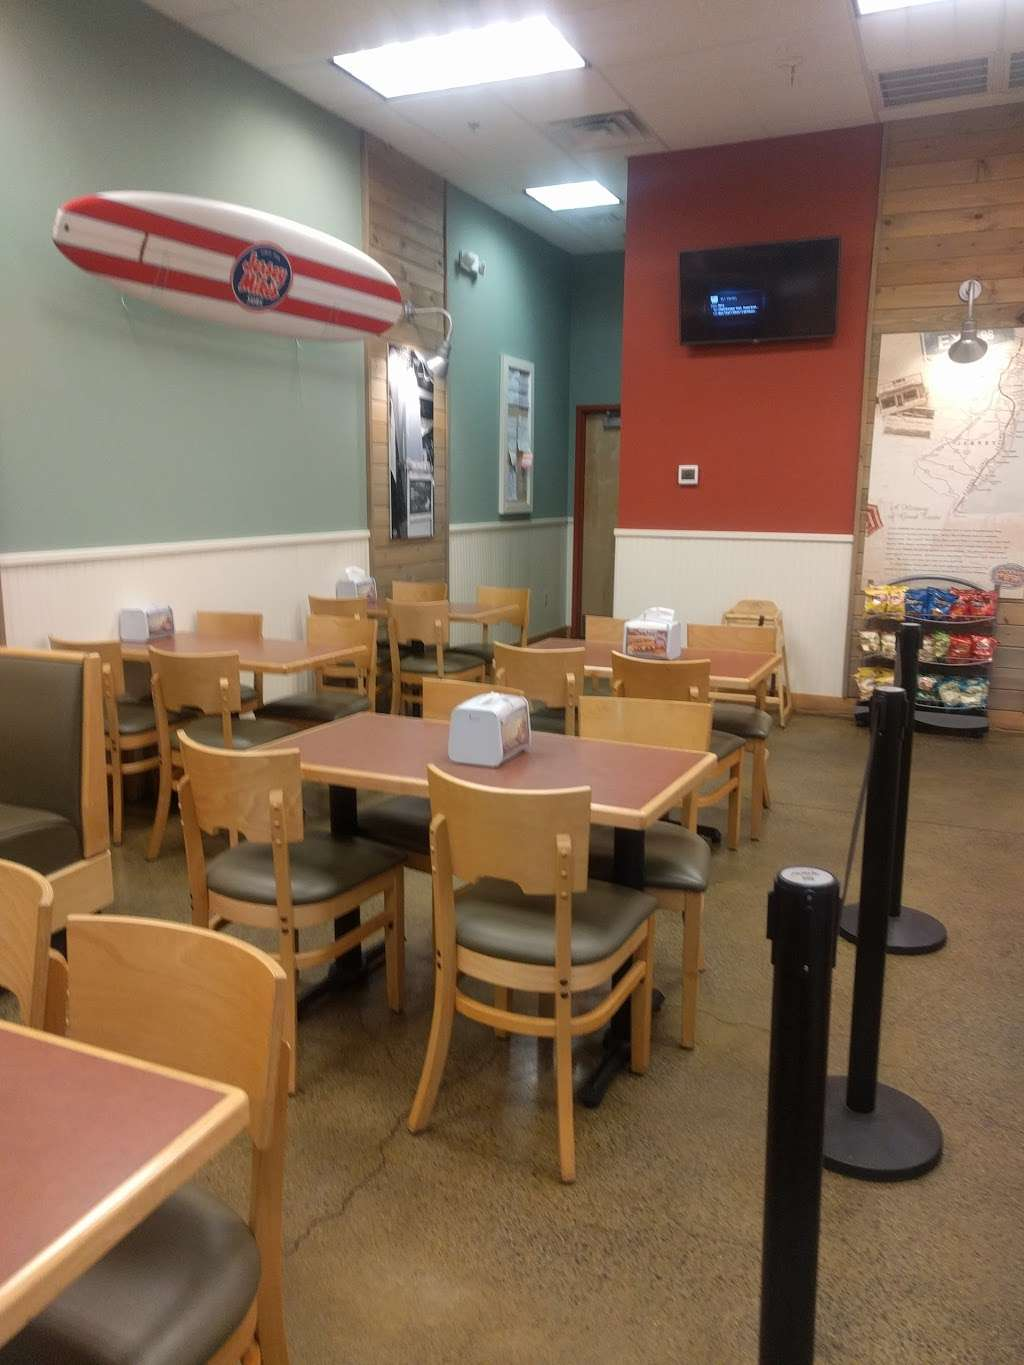 Jersey Mikes Subs - meal takeaway  | Photo 6 of 10 | Address: 3578 PA-611 #260, Bartonsville, PA 18321, USA | Phone: (570) 421-2800